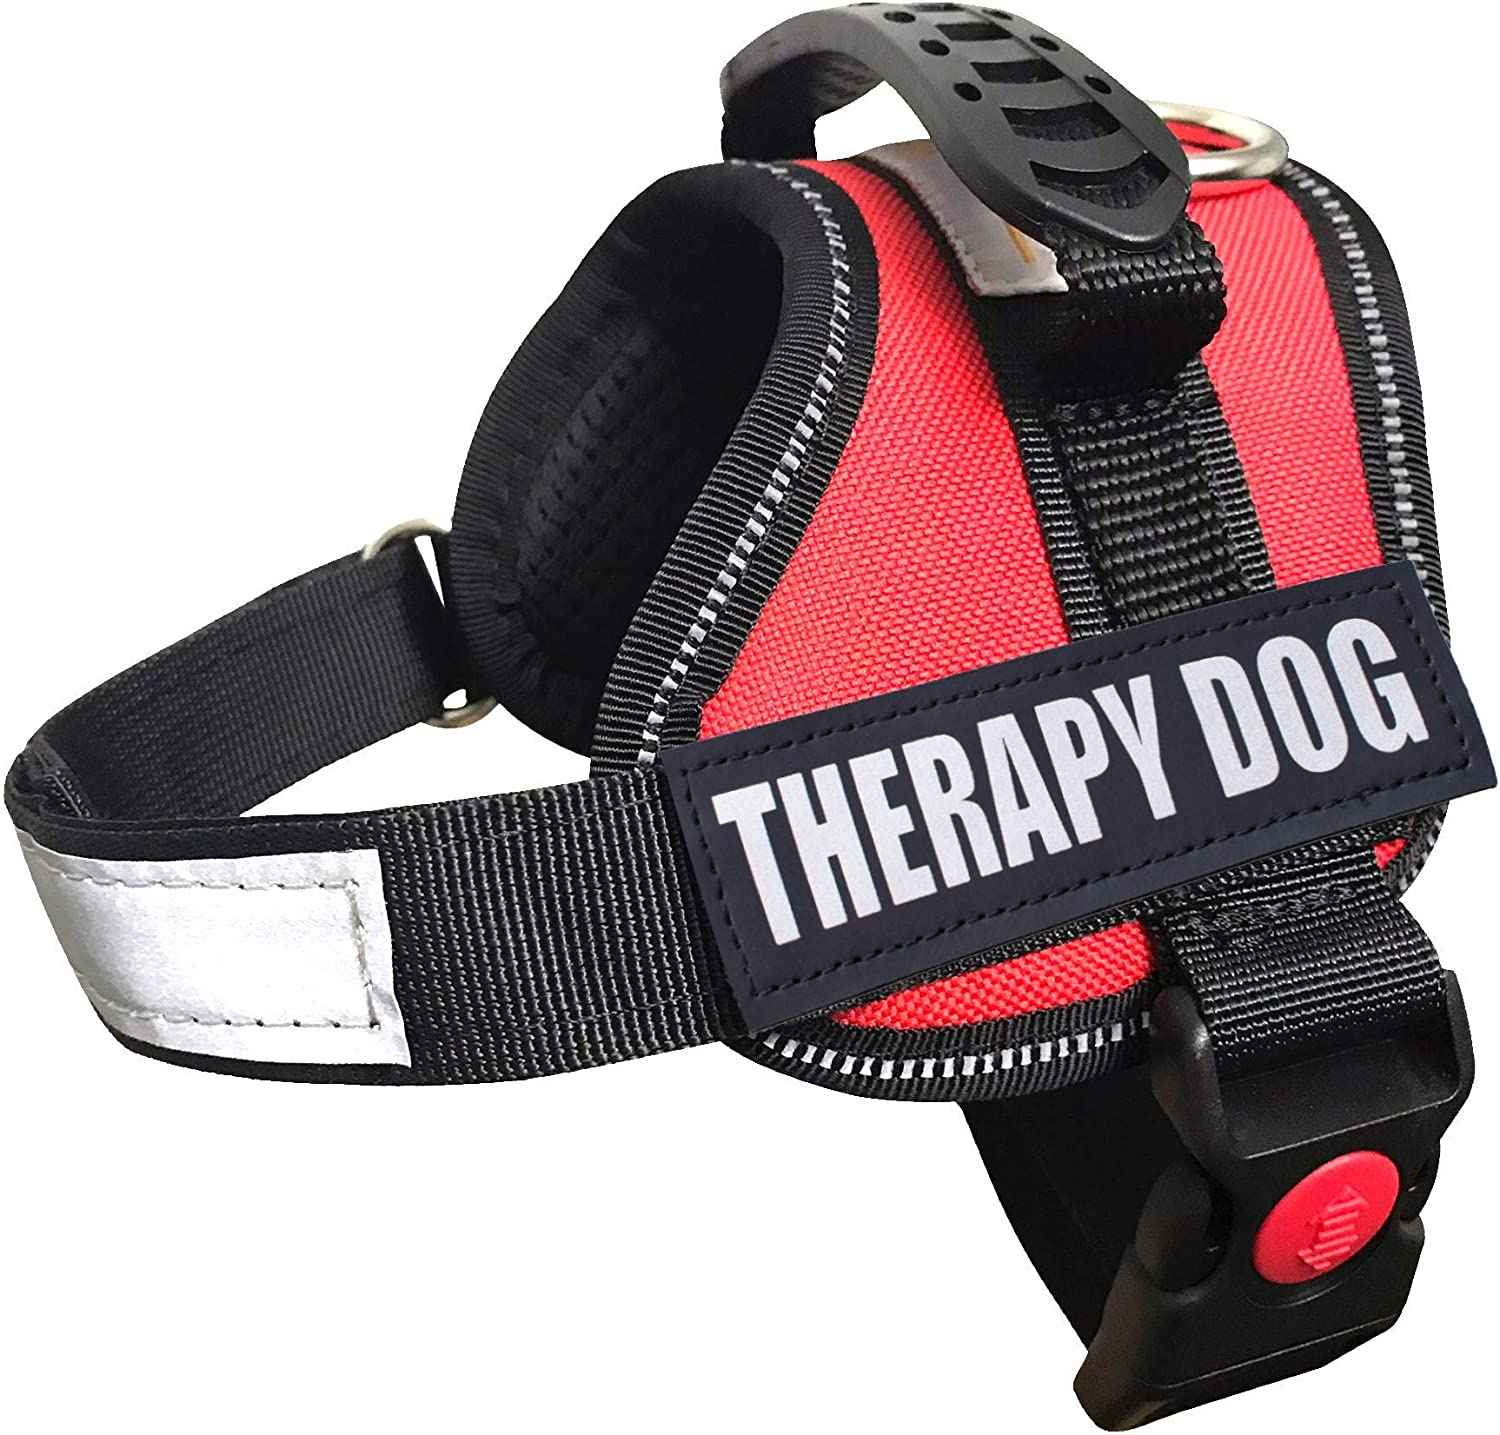 ALBCORP Reflective Therapy Dog Vest Harness, Woven Polyester & Nylon, Adjustable Service Animal Jacket, with 2 Hook and Loop Therapy Dog Removable Patches, XXS, Red